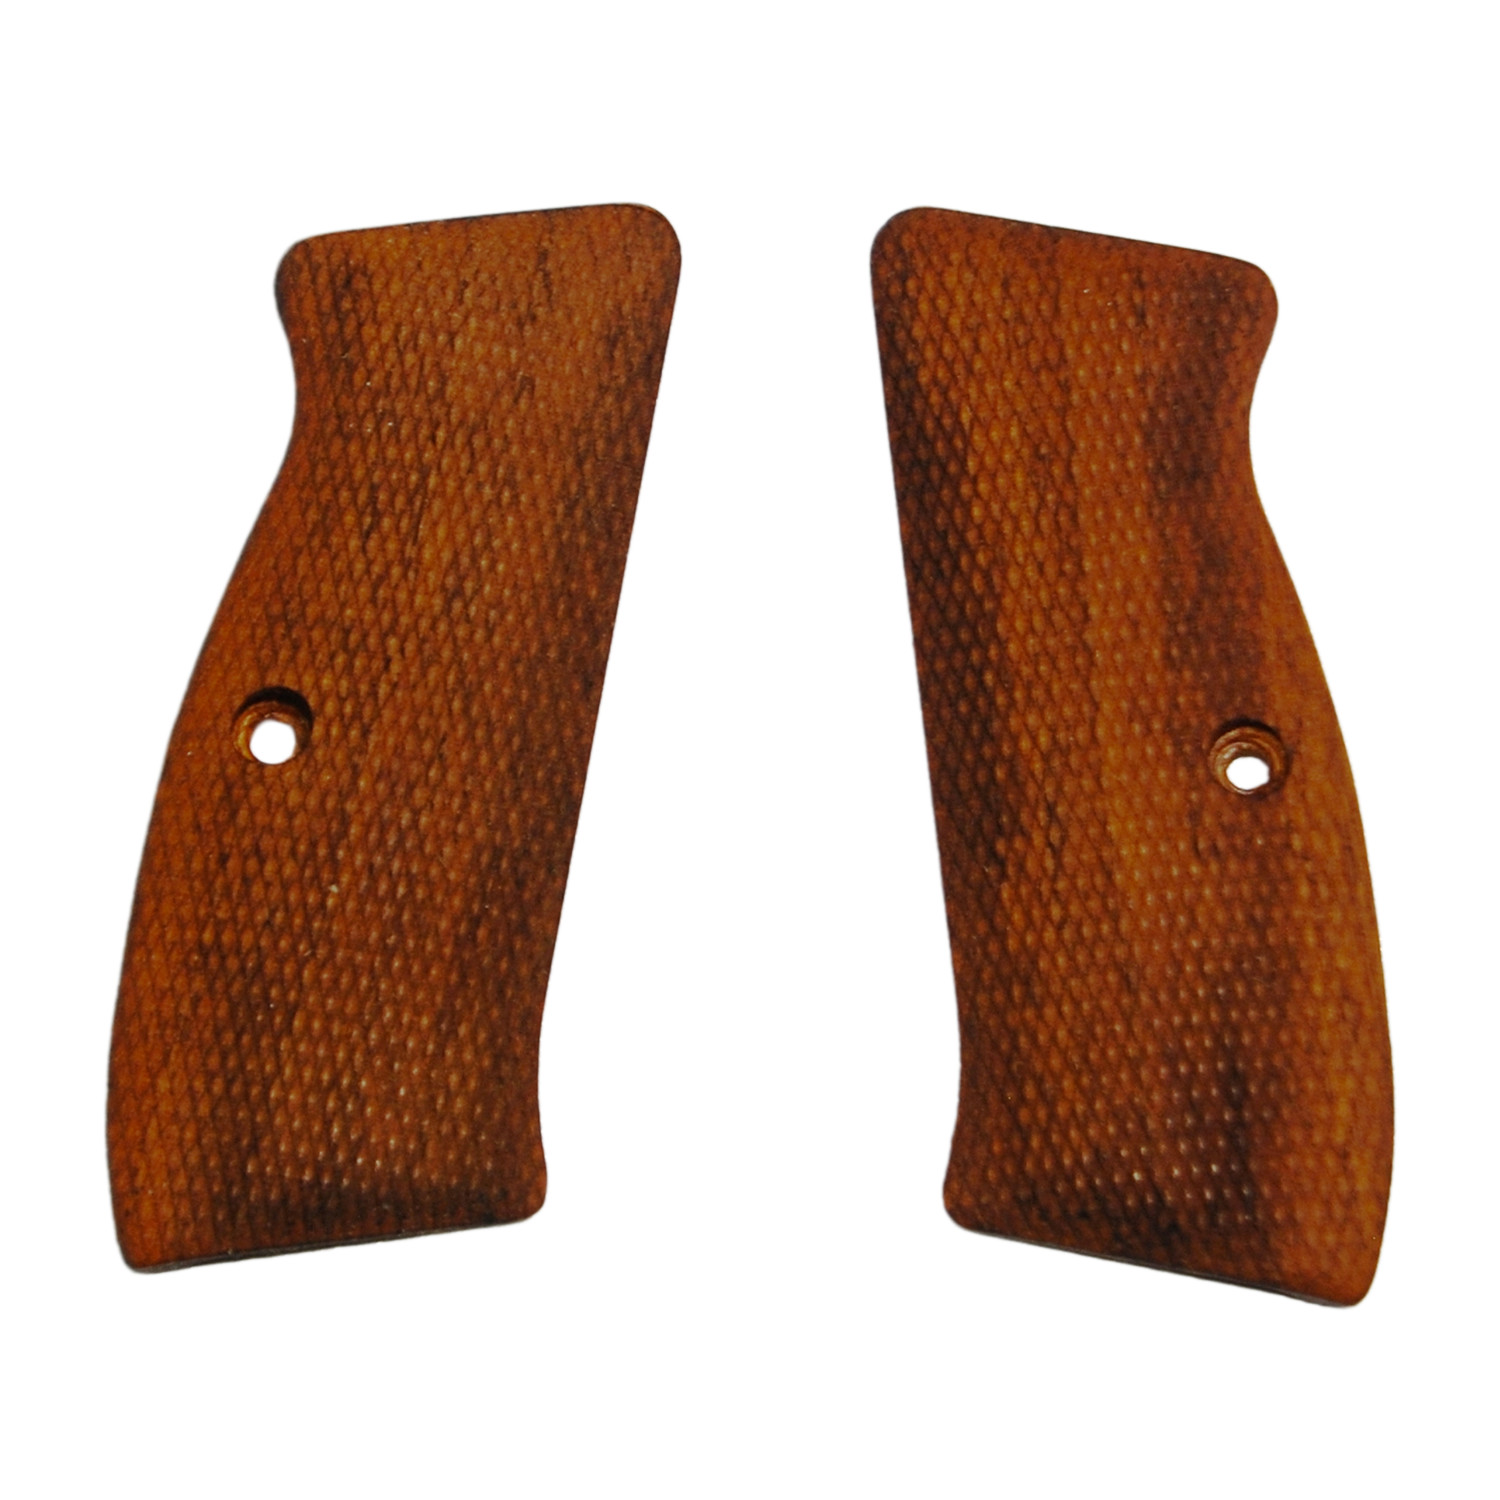 Home - Vintage Gun Grips - Reproduction Pistol Grips, Buttplates and